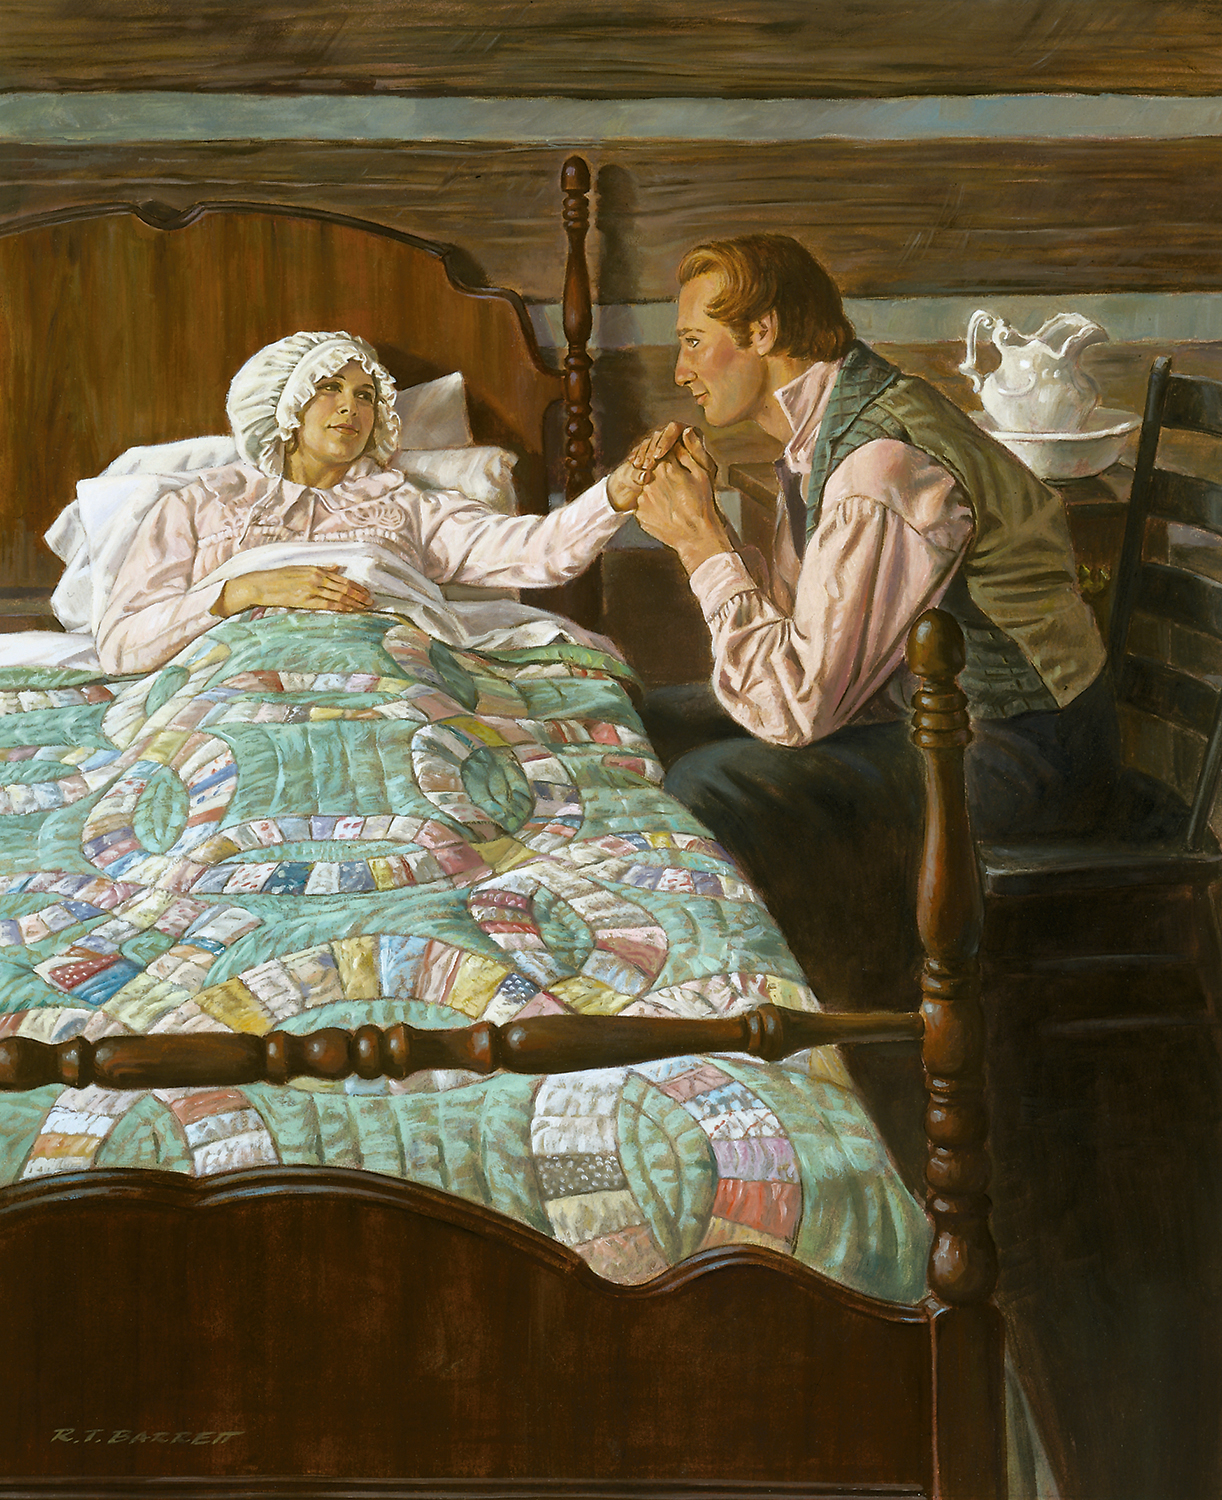 A painting of Joseph holding Emma's hand at the bedside.